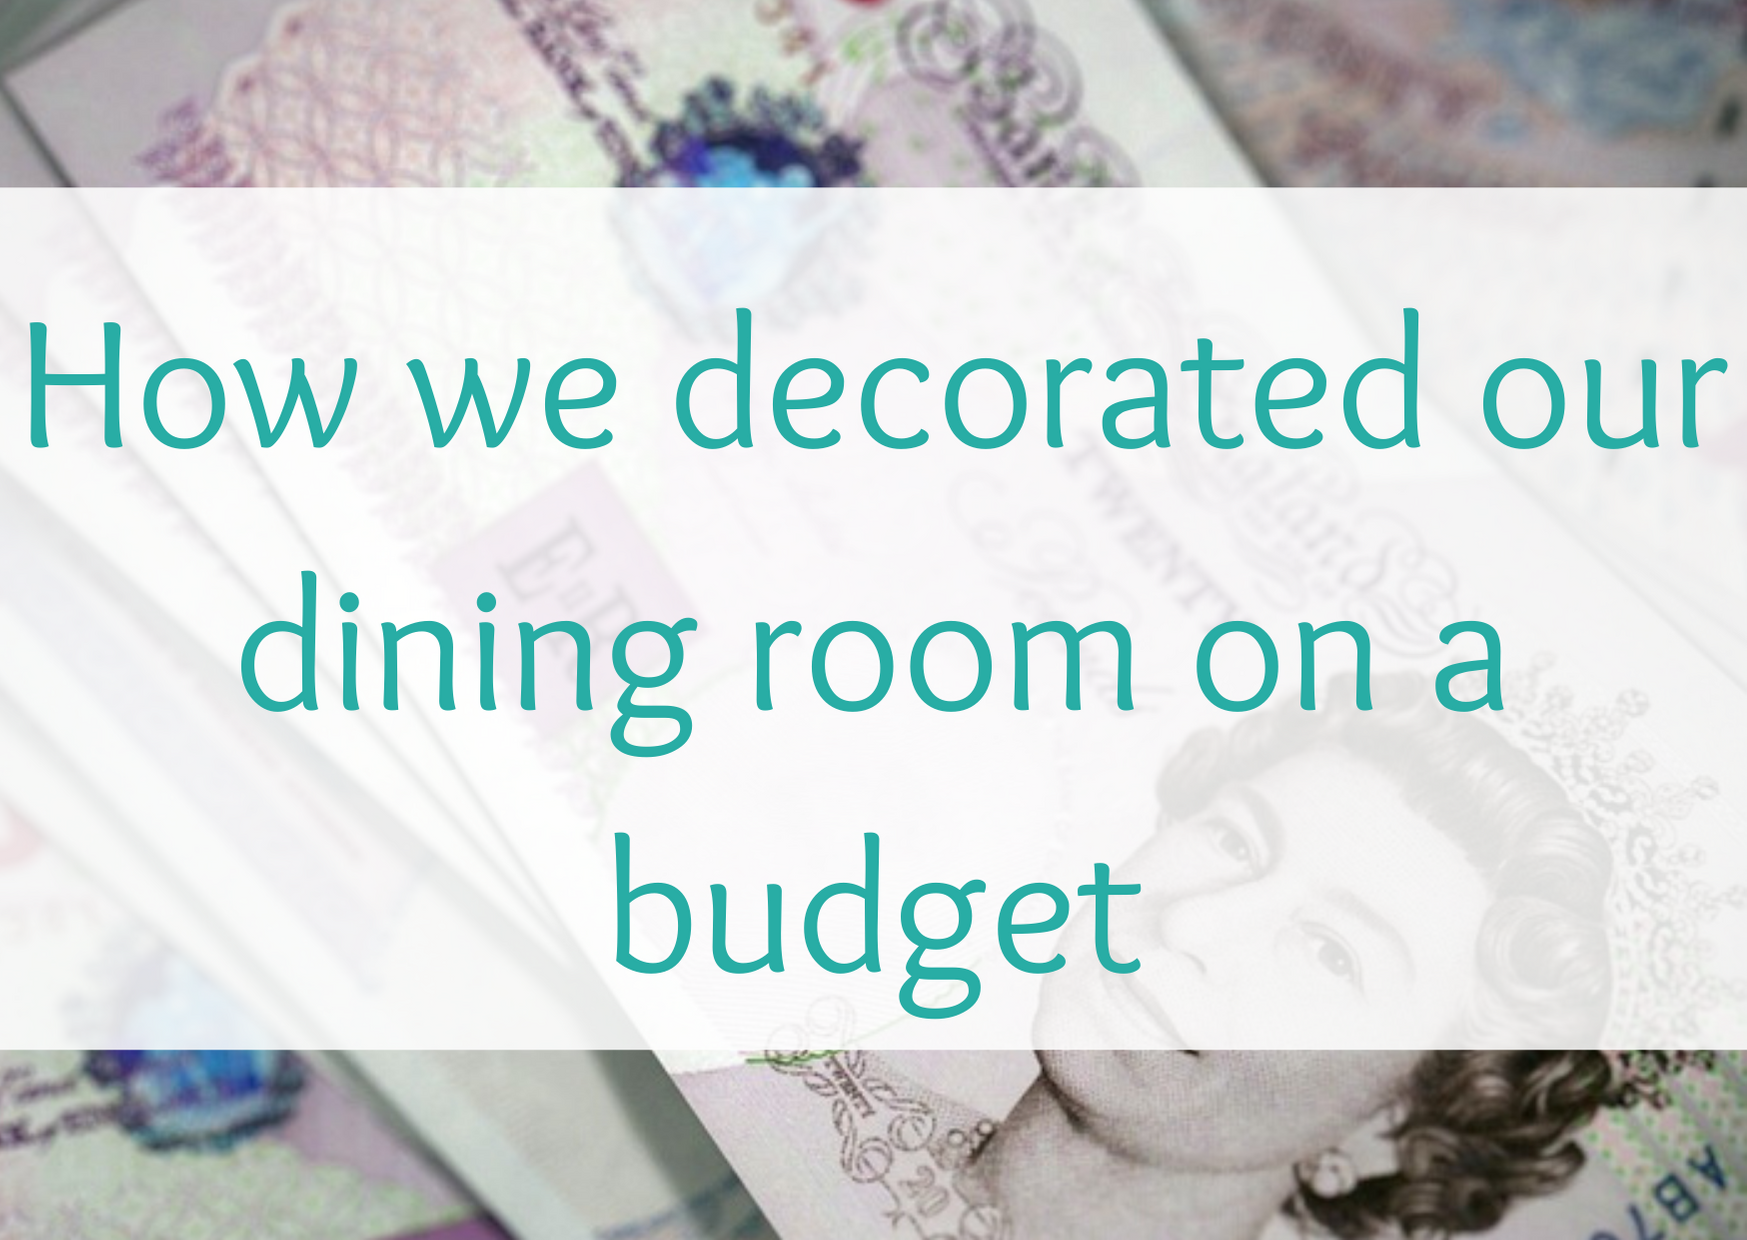 How we decorated our dining room on a budget